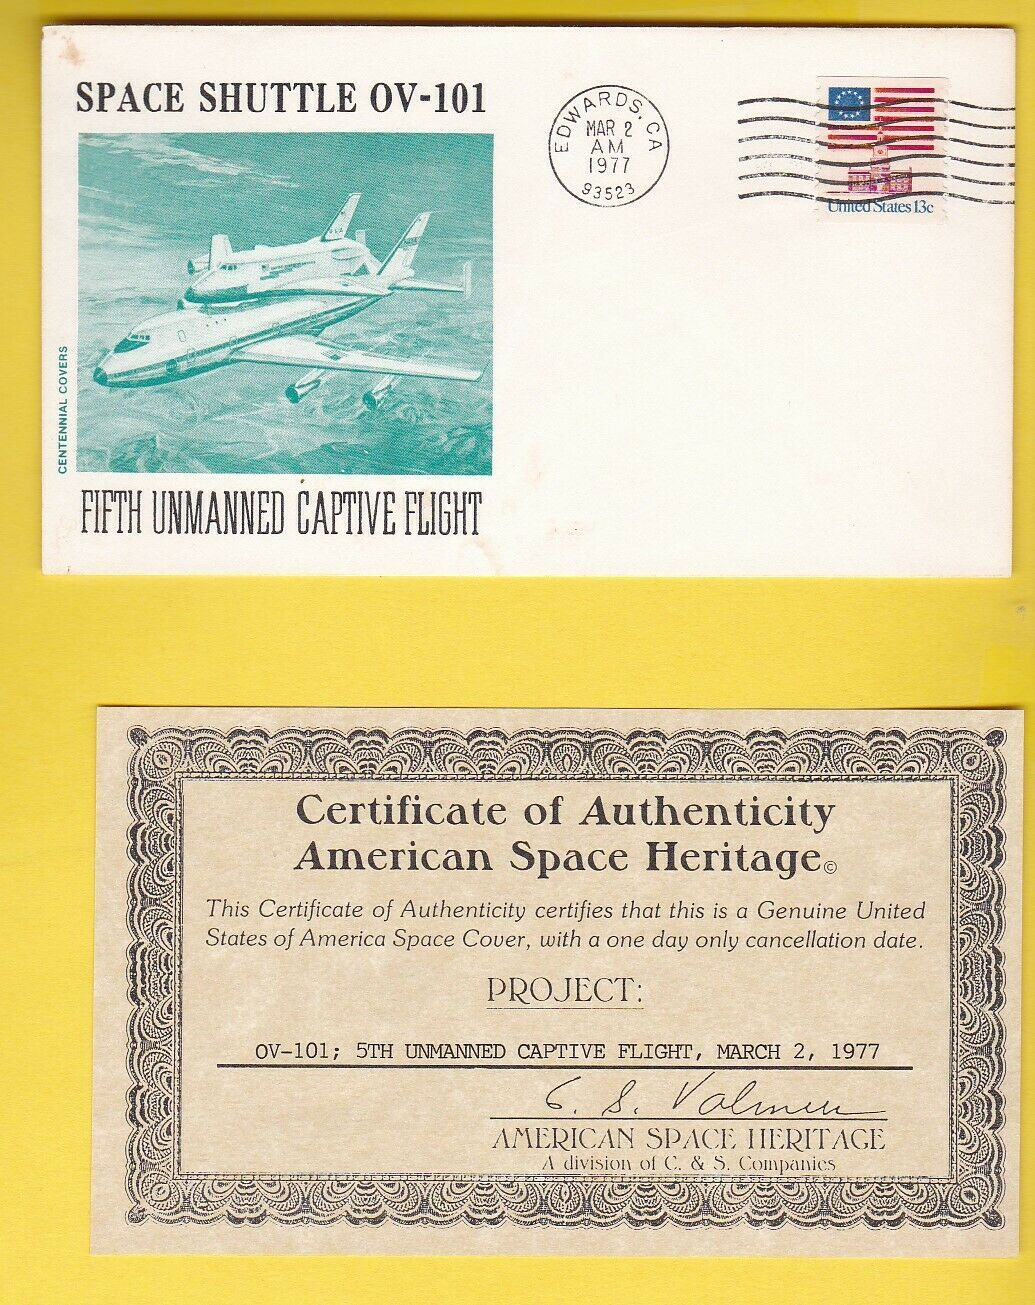 Primary image for 5th UNMANNED CAPTIVE FLIGHT EDWARDS CA 8/12/77 AMERICAN SPACE HERITAGE WITH COA